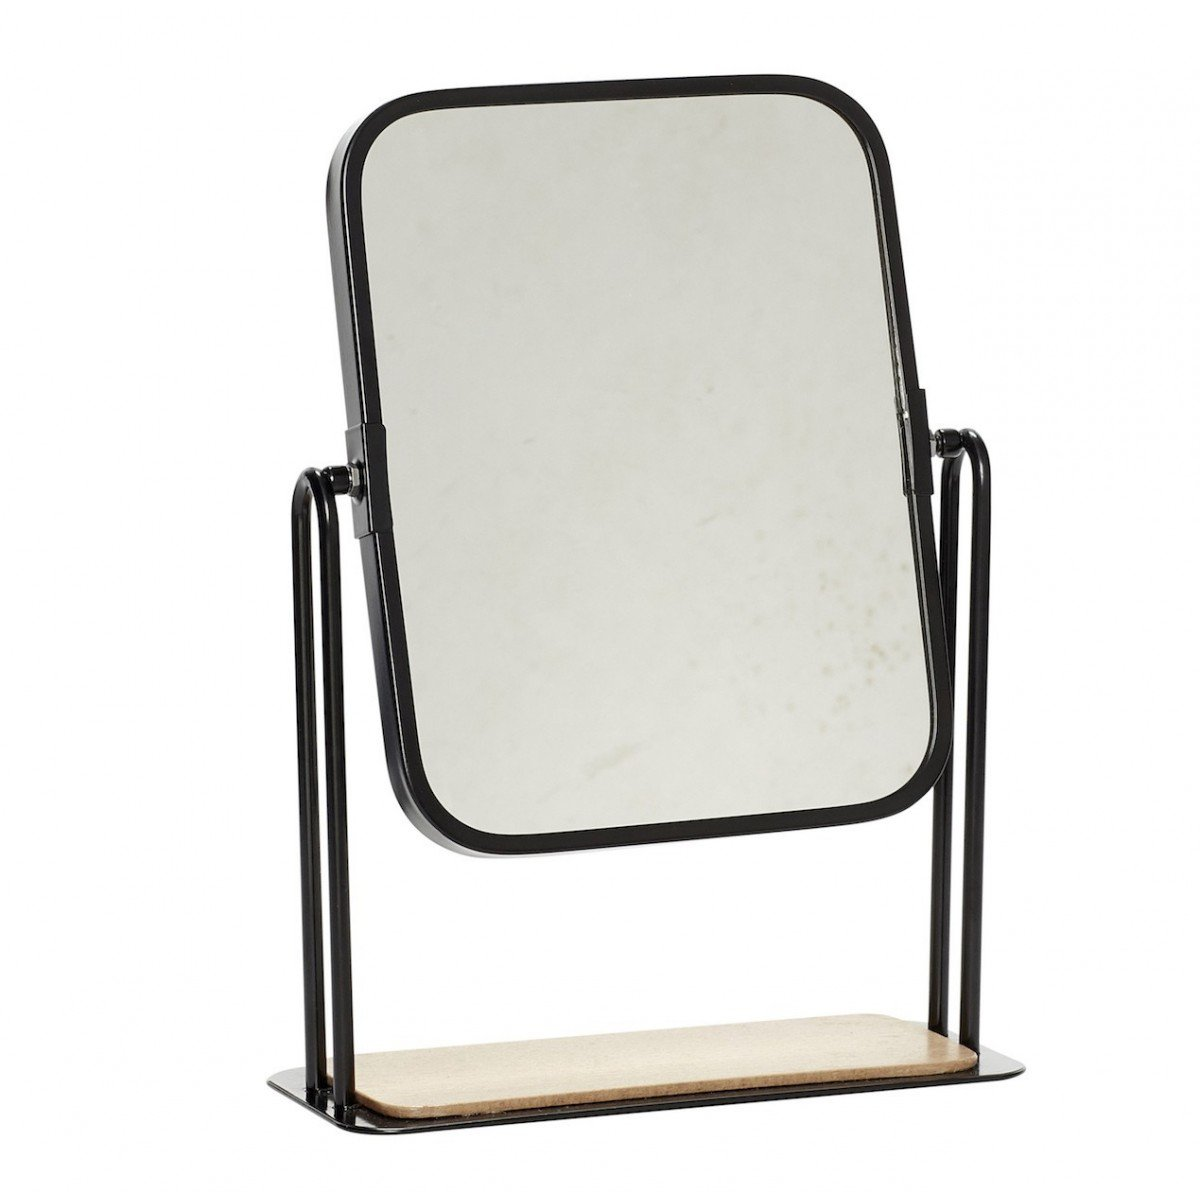 miroir de table rectangulaire noir h bsch